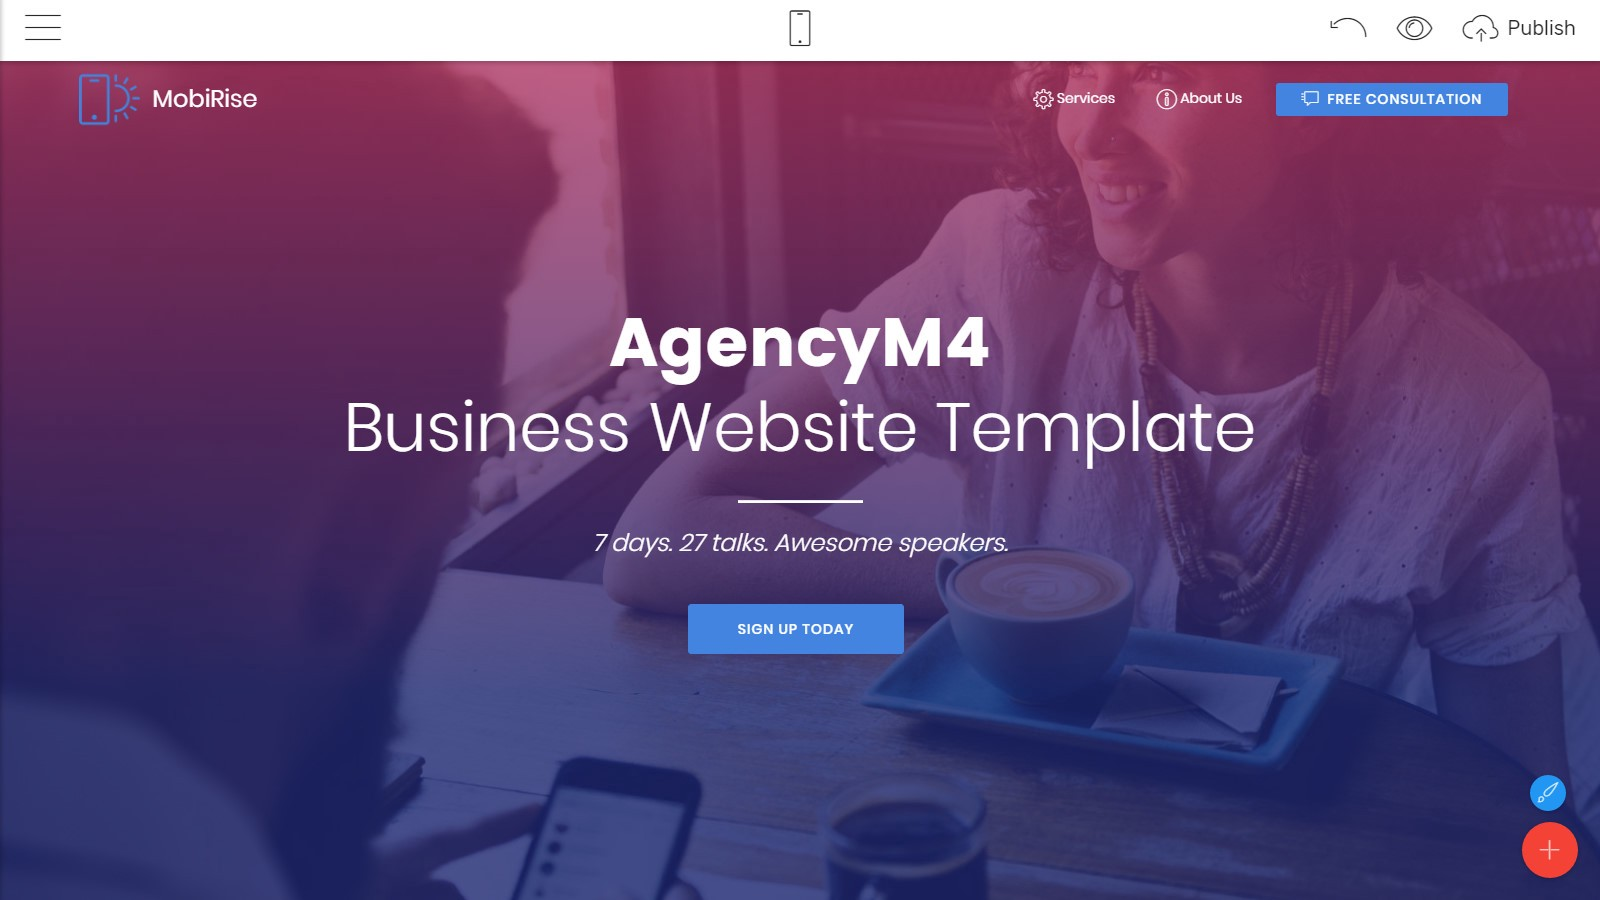 The Latest Bootstrap Mobile Templates You Shouldn\'t Miss